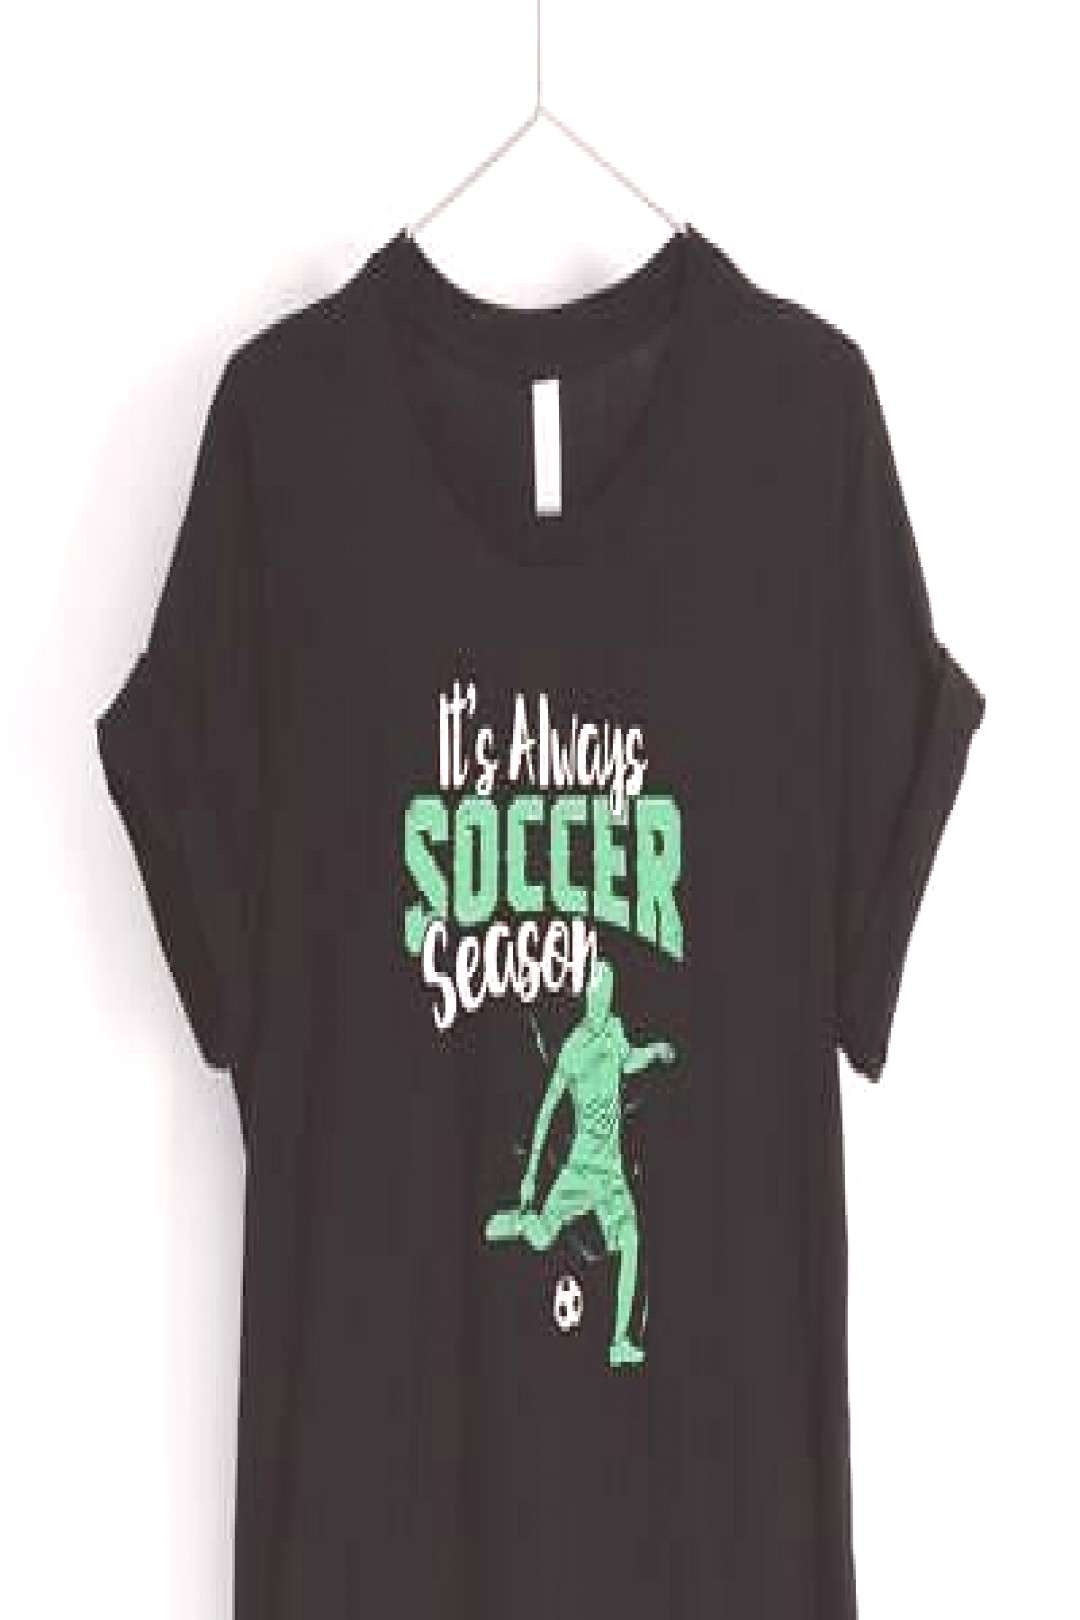 Its Always Soccer Season Unisex Shirt Funny Soccer T-Shirt soccer gifts (ebay link)